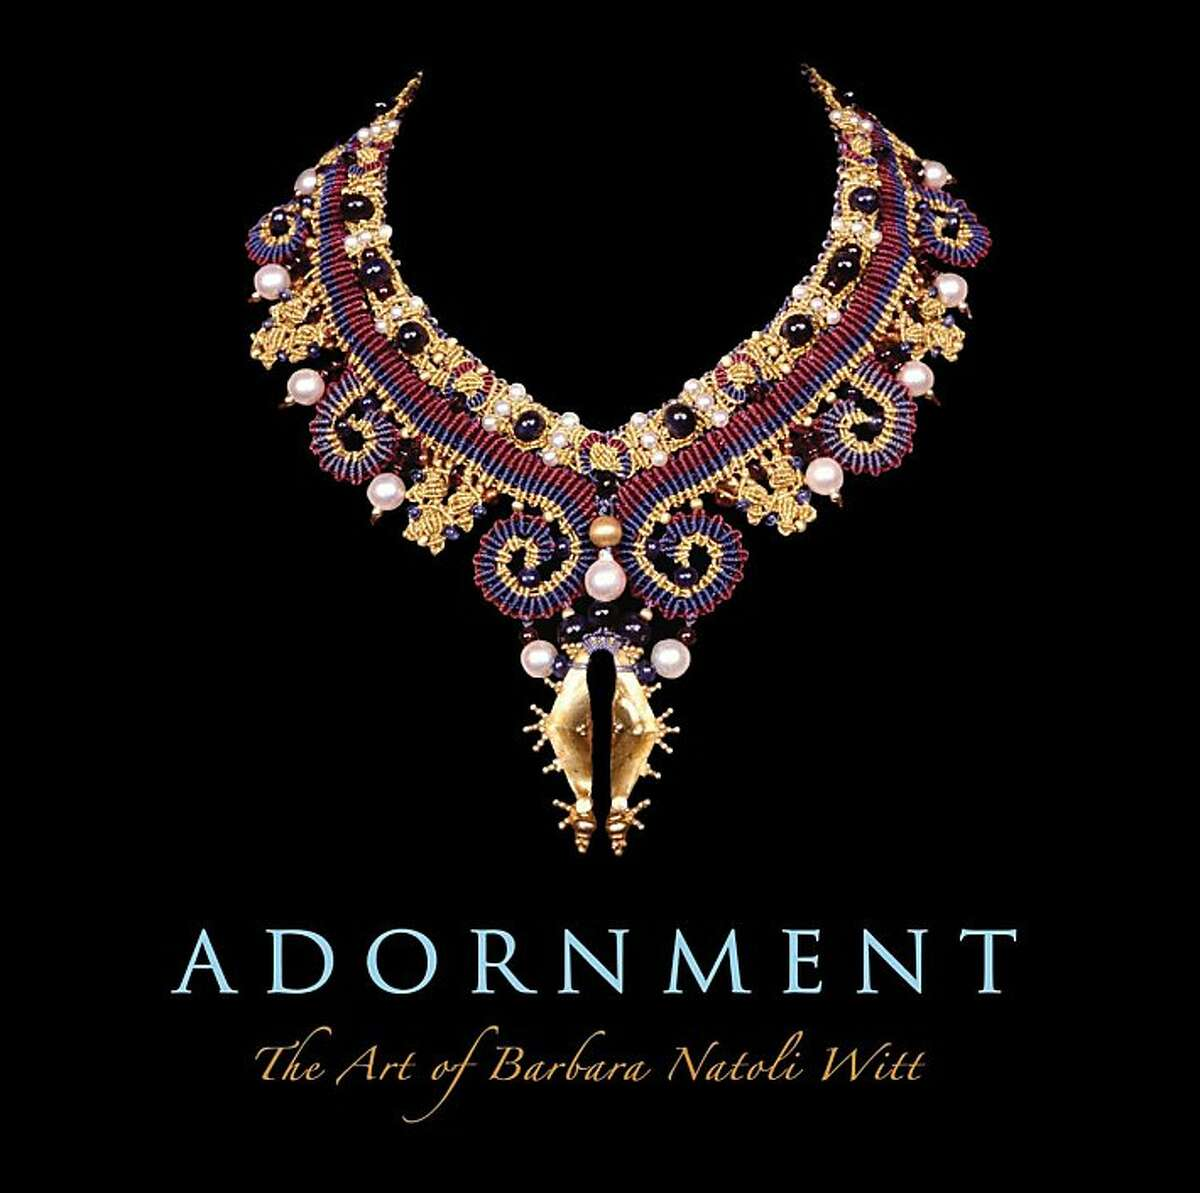 Witt book cover Ran on: 08-07-2011 Barbara Natoli Witt will celebrate the publication of her new book Adornment (at left) Sept. 7 at Ethnic Arts, 1000 Gilman Center, 1314 10th St., Berkeley. Her necklaces are also sold there.